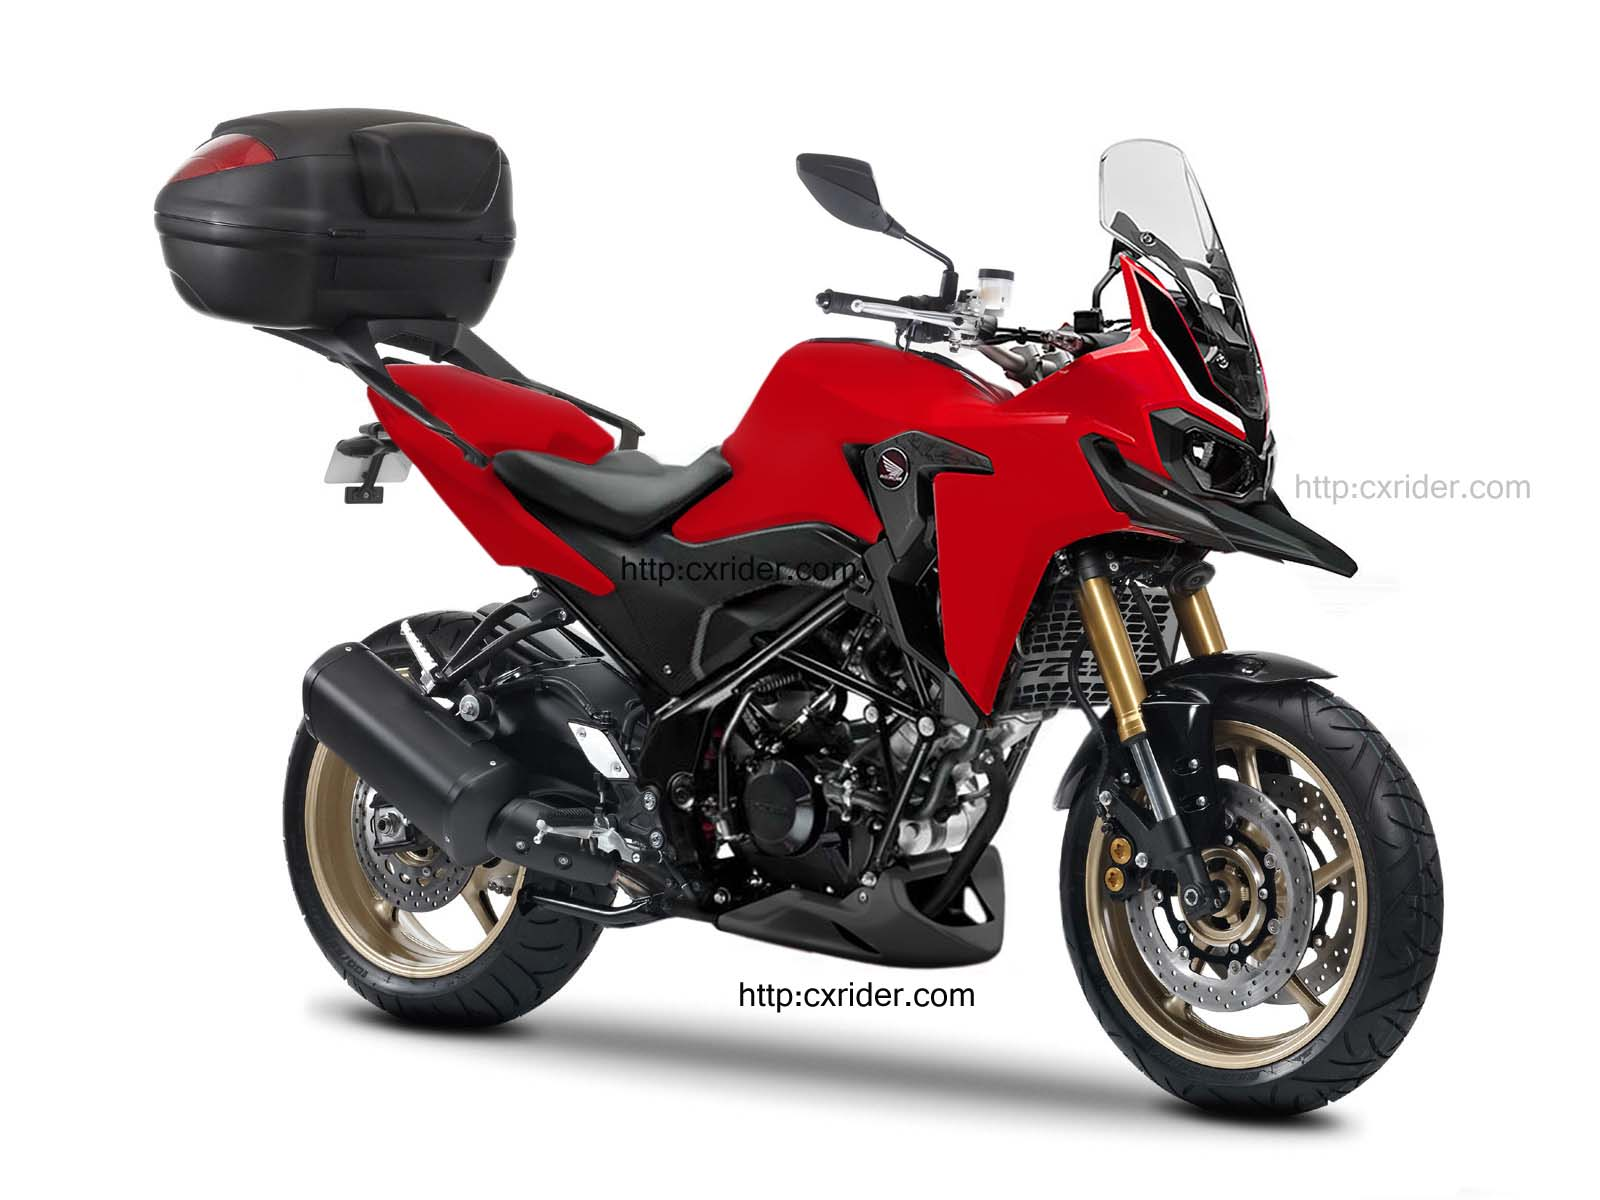 Download Ide 99 Modifikasi Motor Touring Cb 150 R Terbaru Dan